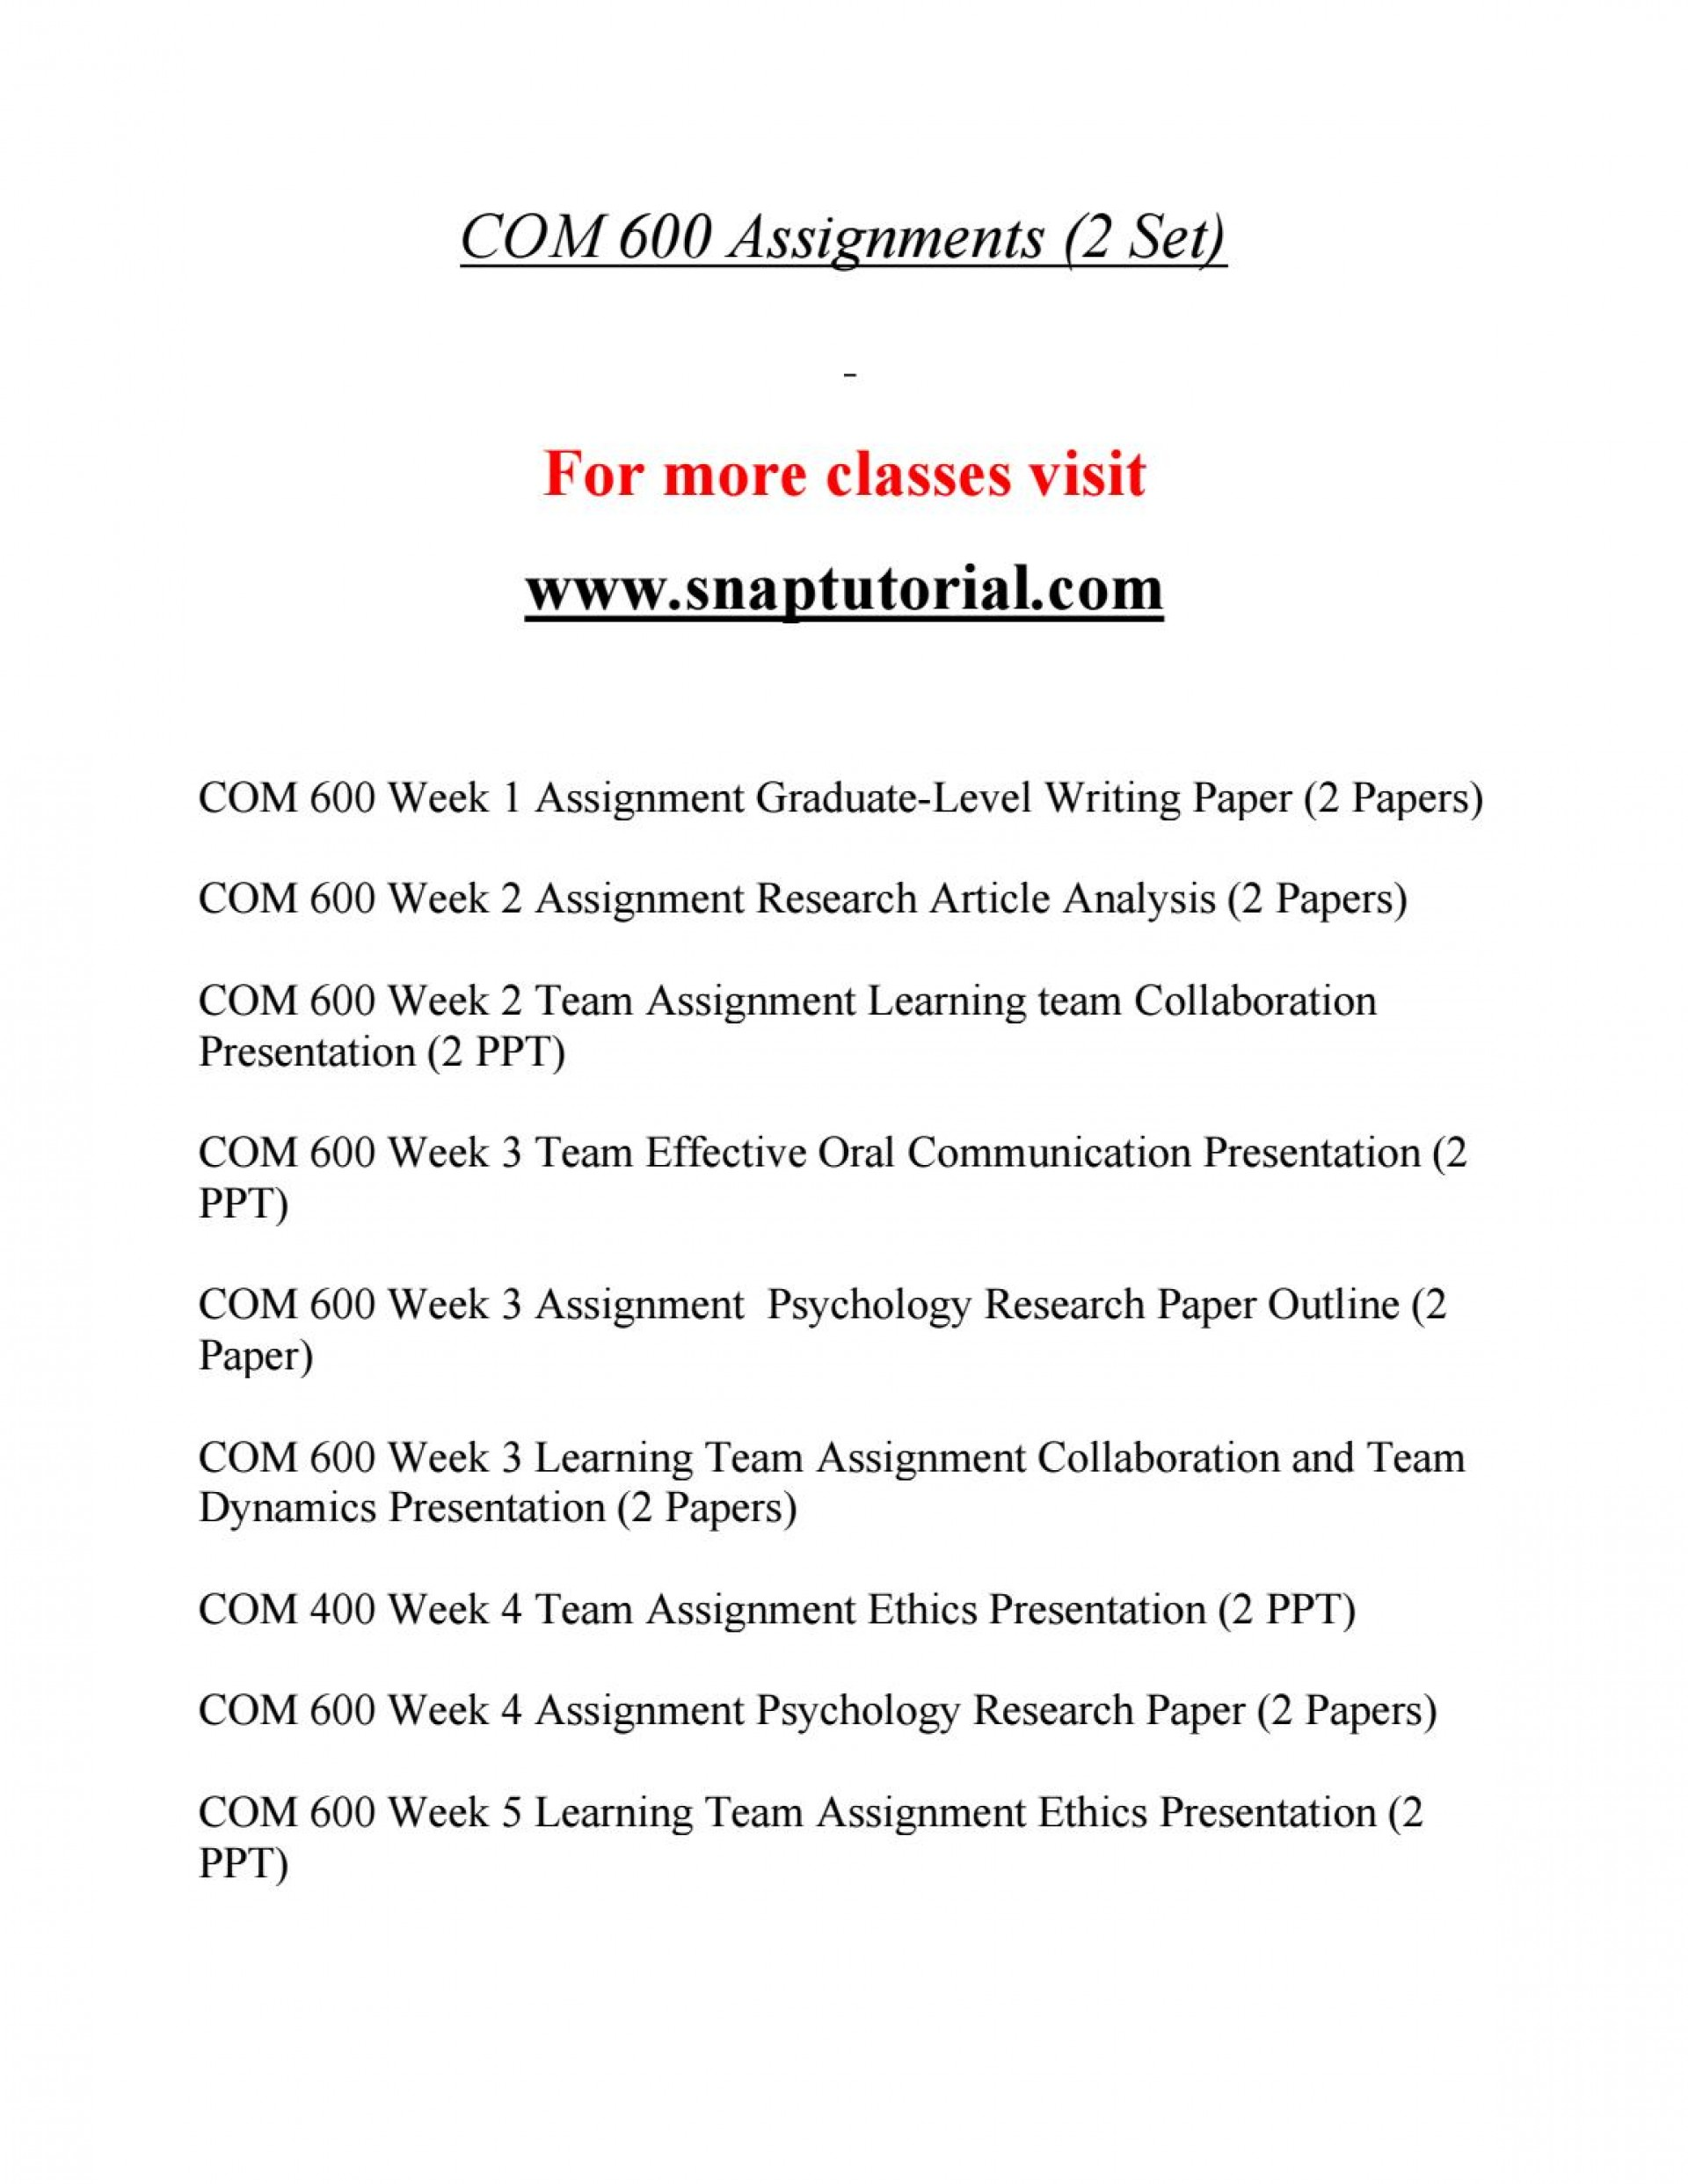 008 Psychology Research Paper Outline Com Page 1 Striking 600 Com/600 1920